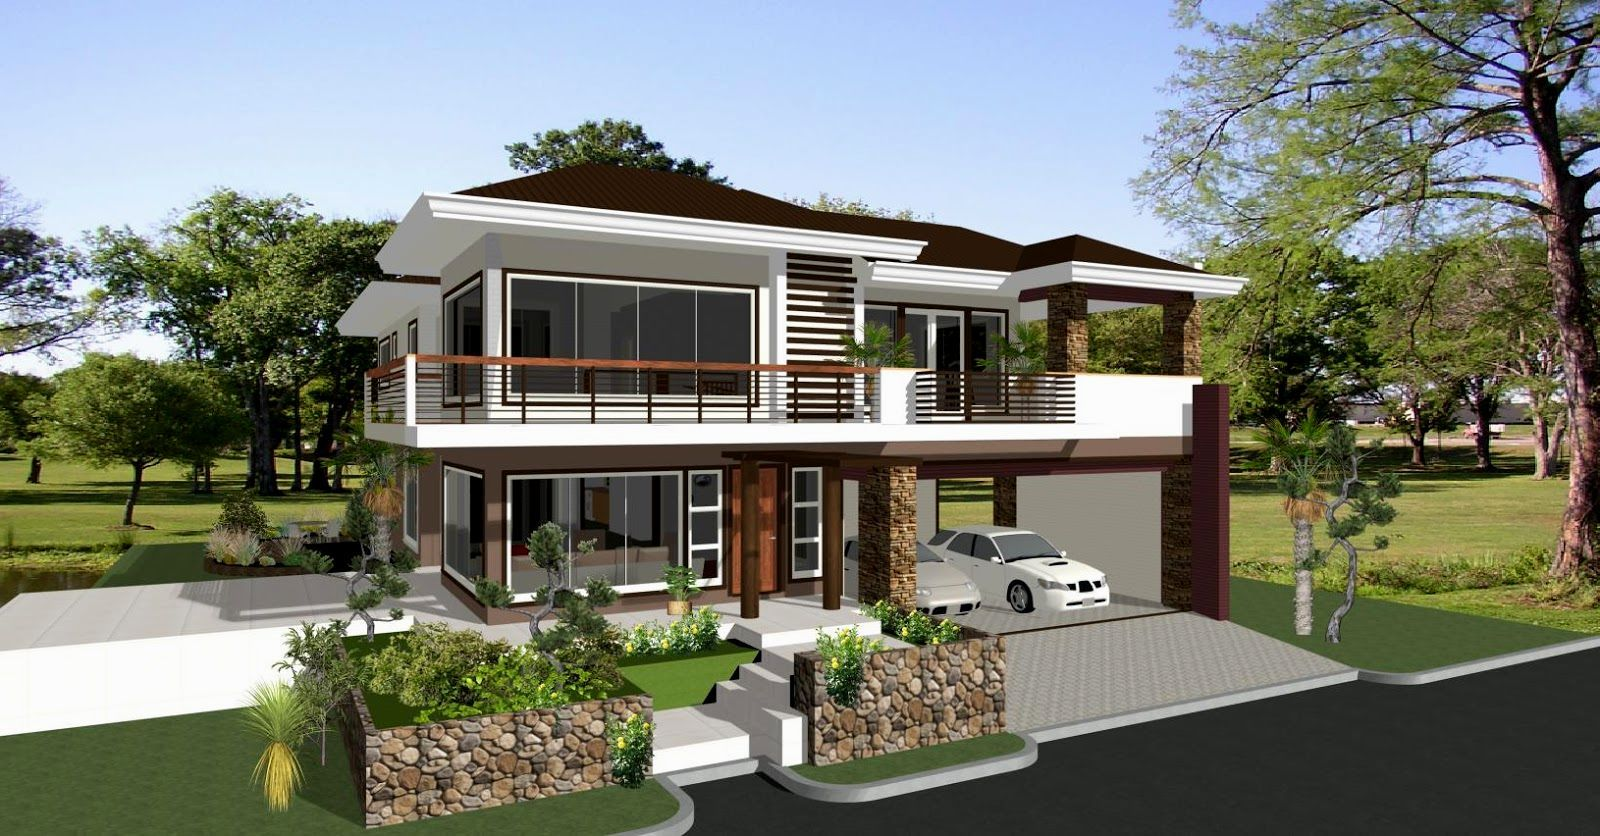 House designs and floor plans in the philippines for Home garden design in the philippines